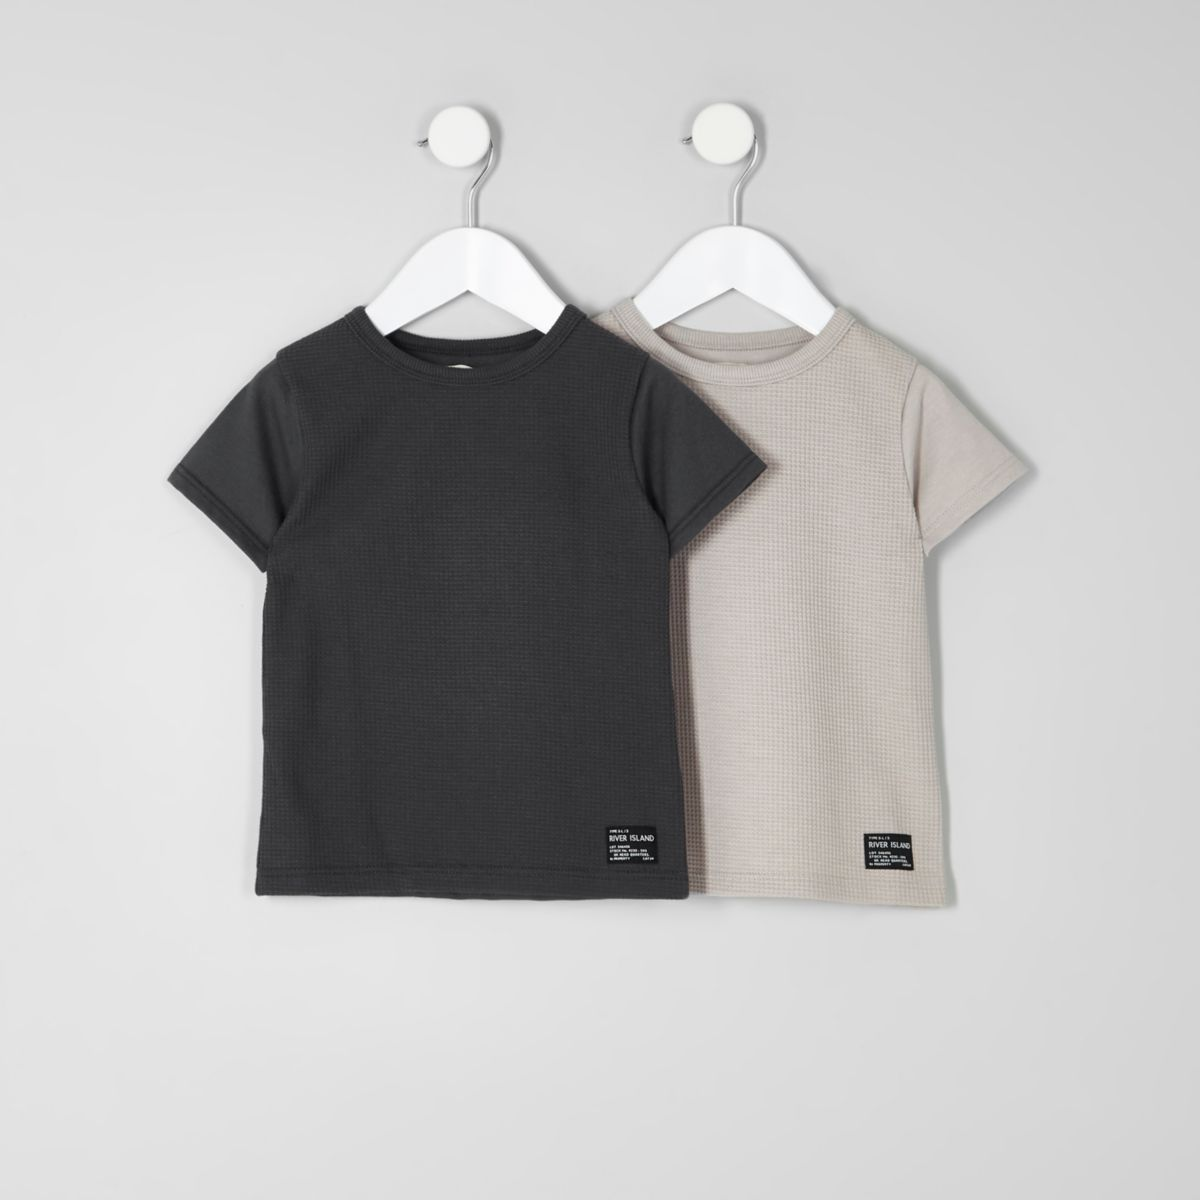 Mini boys grey and stone T-shirt multipack